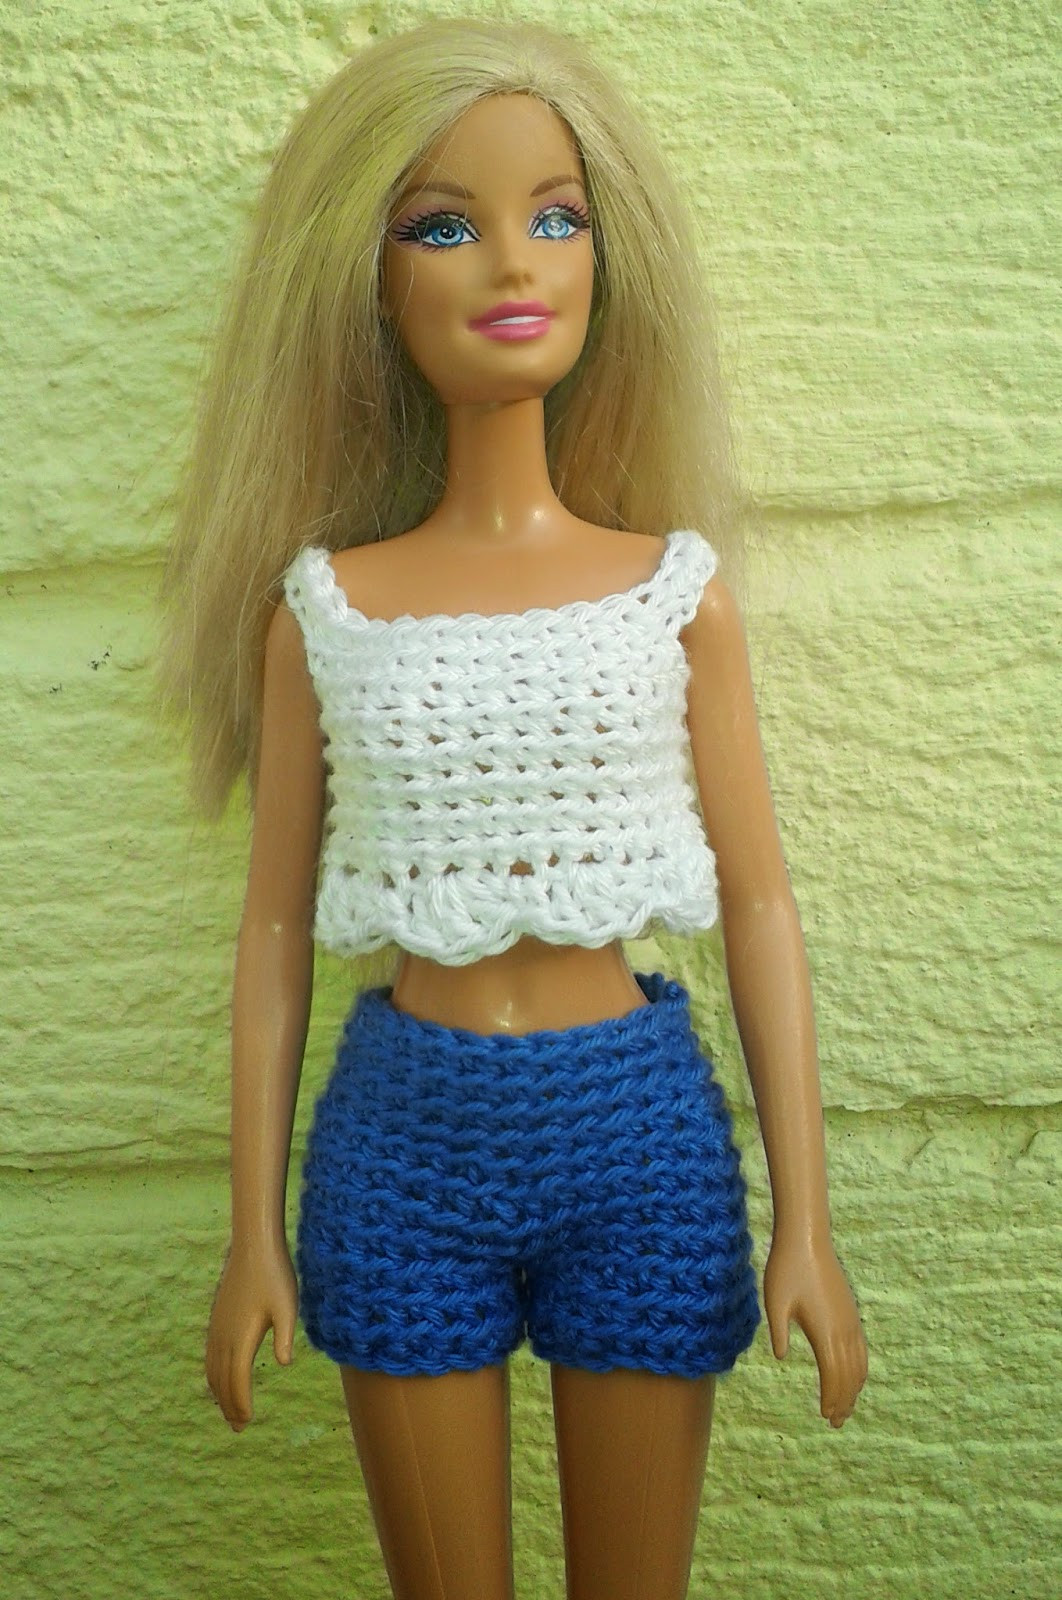 Free Barbie Crochet Patterns Lovely Linmary Knits Barbie Crochet Shorts and Cropped top Of Awesome 43 Pics Free Barbie Crochet Patterns